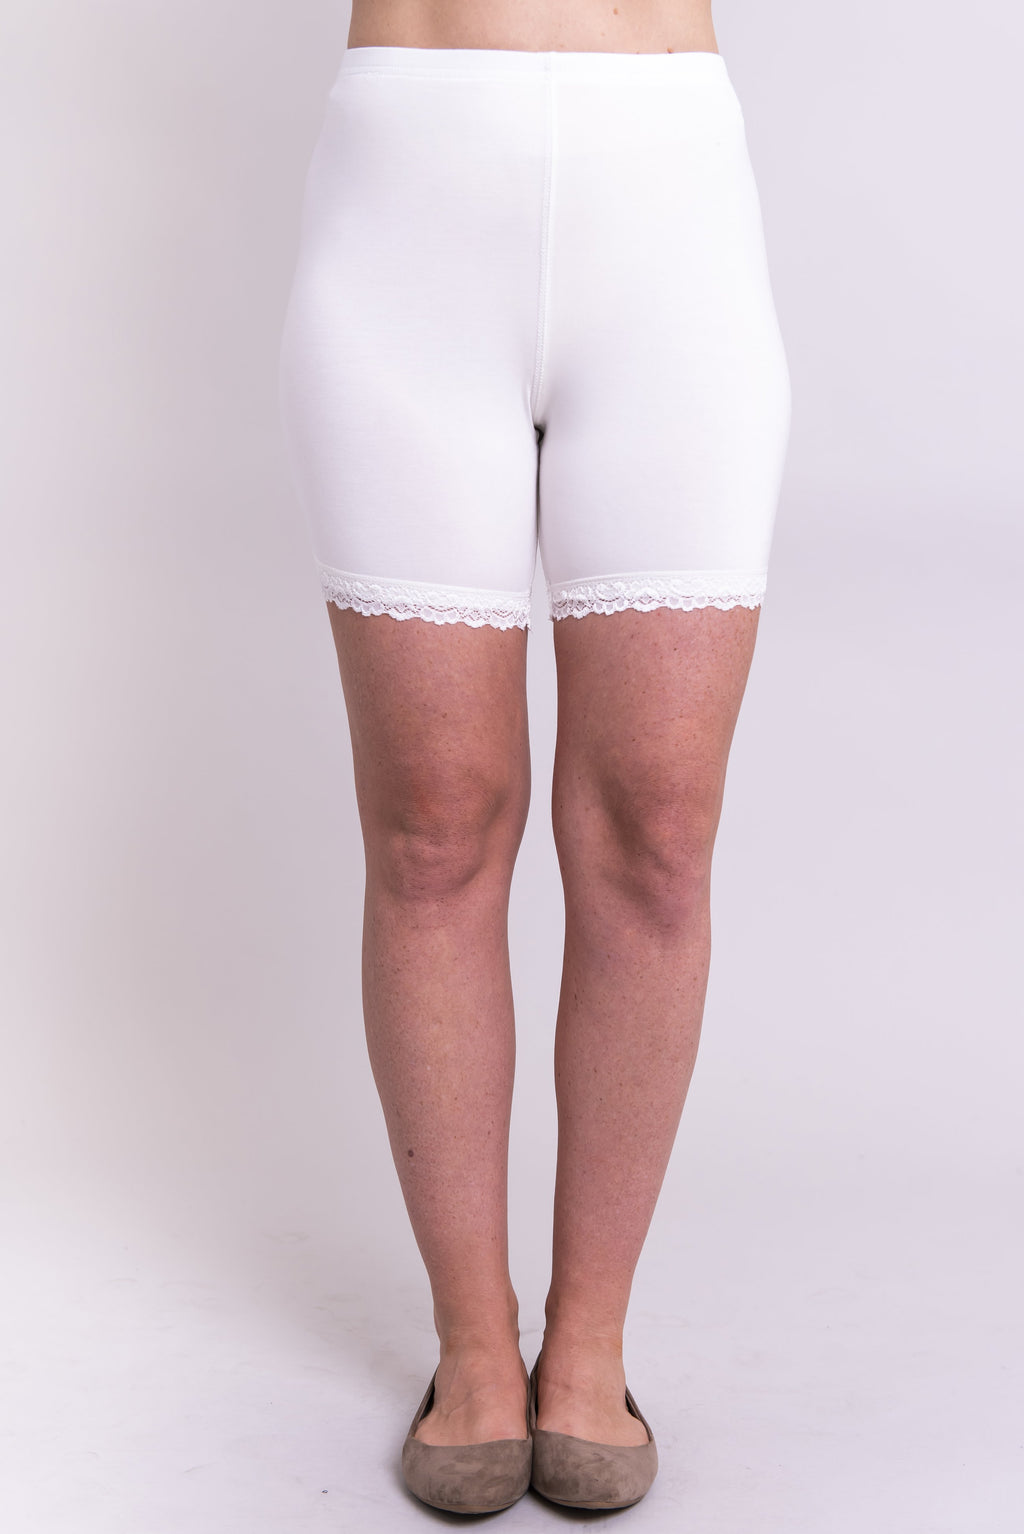 Kitty Undershorts, White